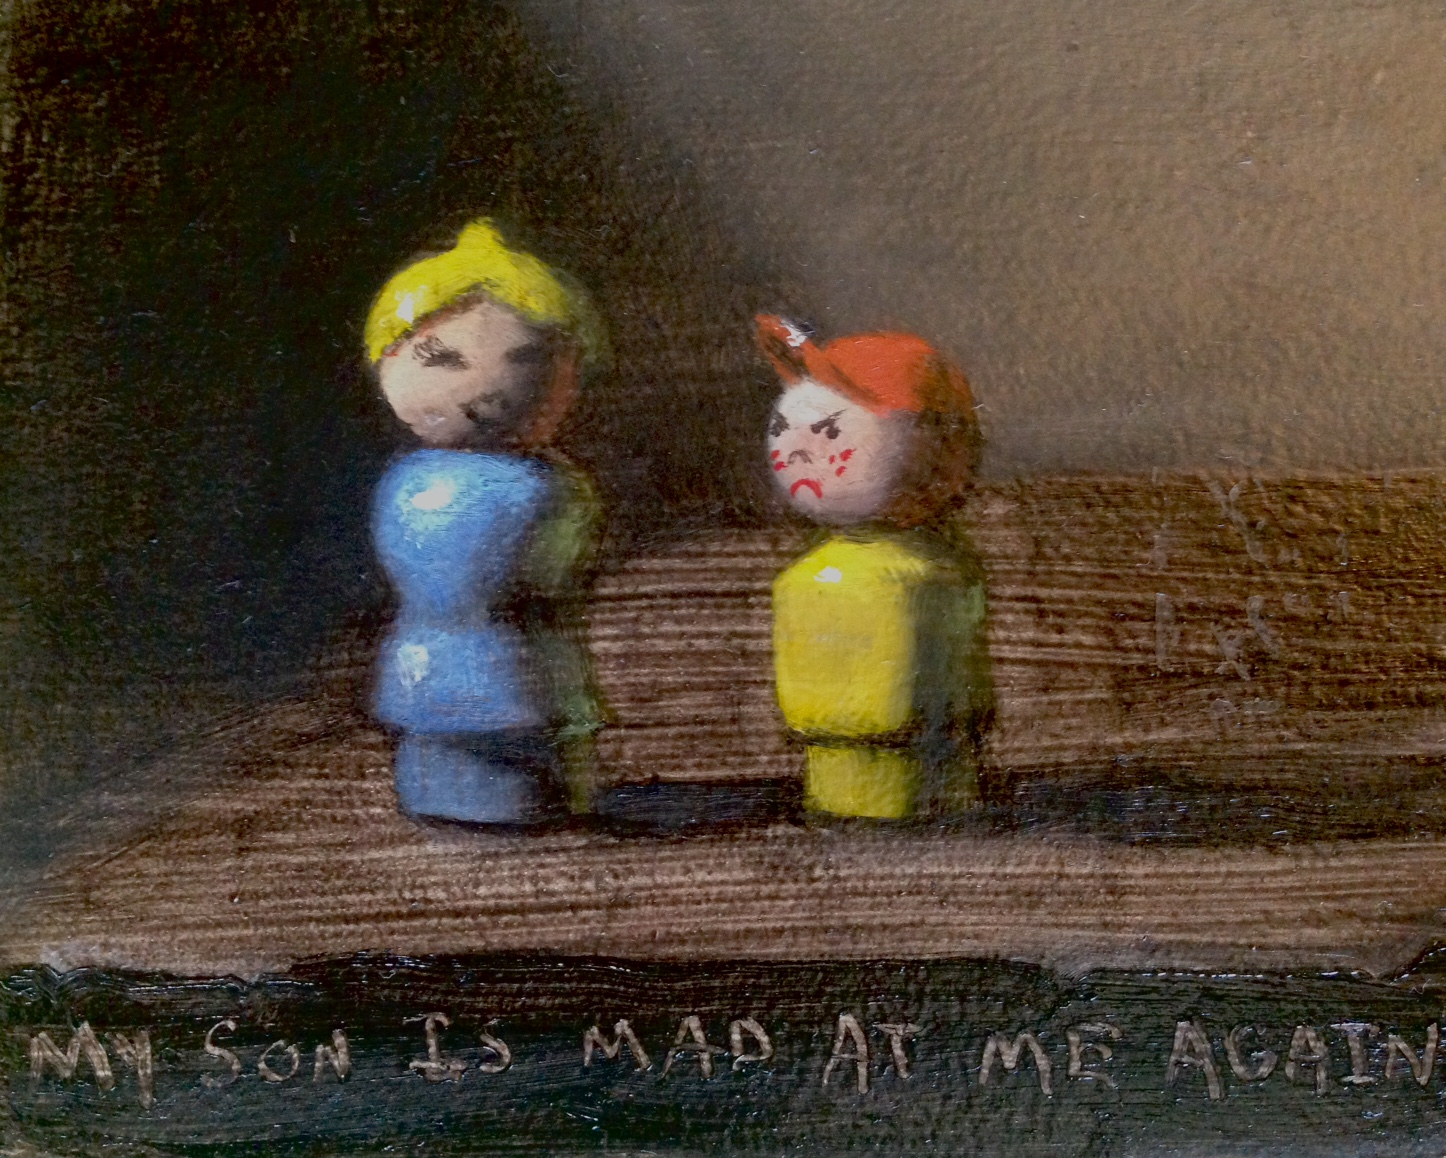 """""""My Son Is Mad At Me Again,"""" oil on board, 4x5"""""""